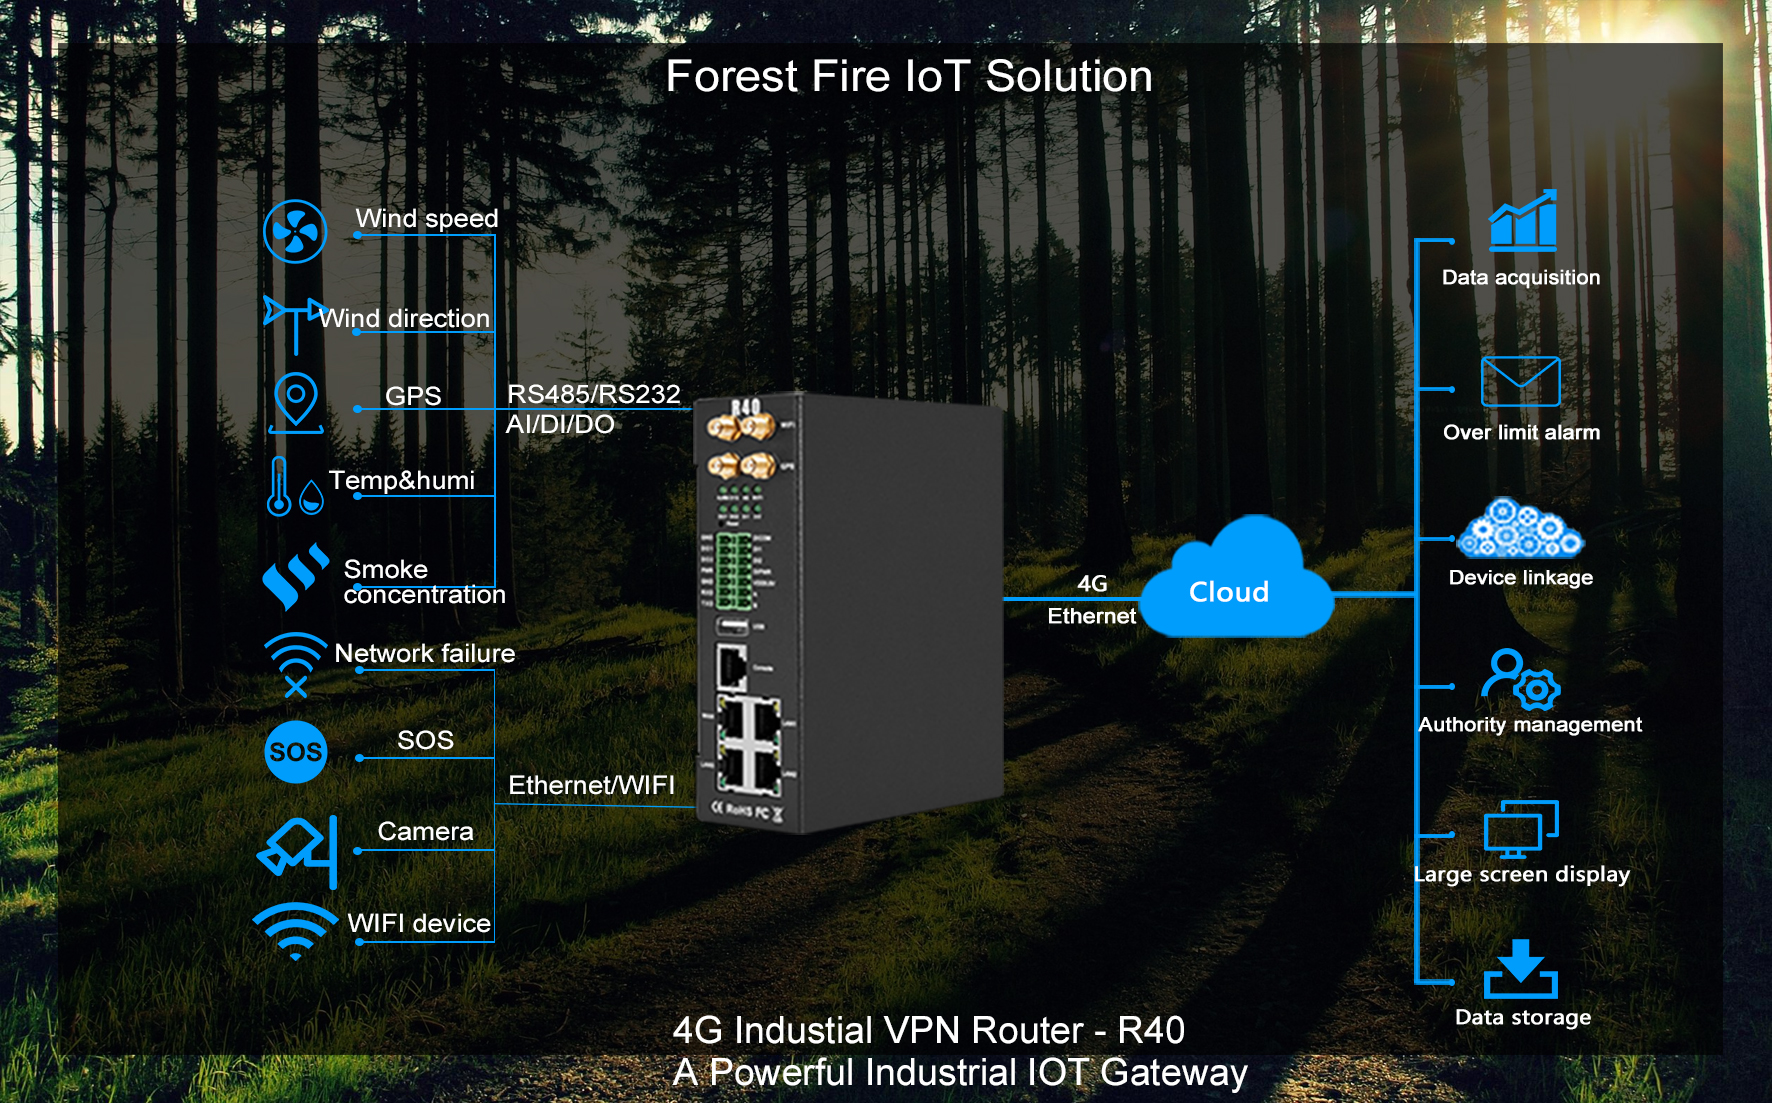 Industrial Wireless Routers Used in Forest Fire Monitoring